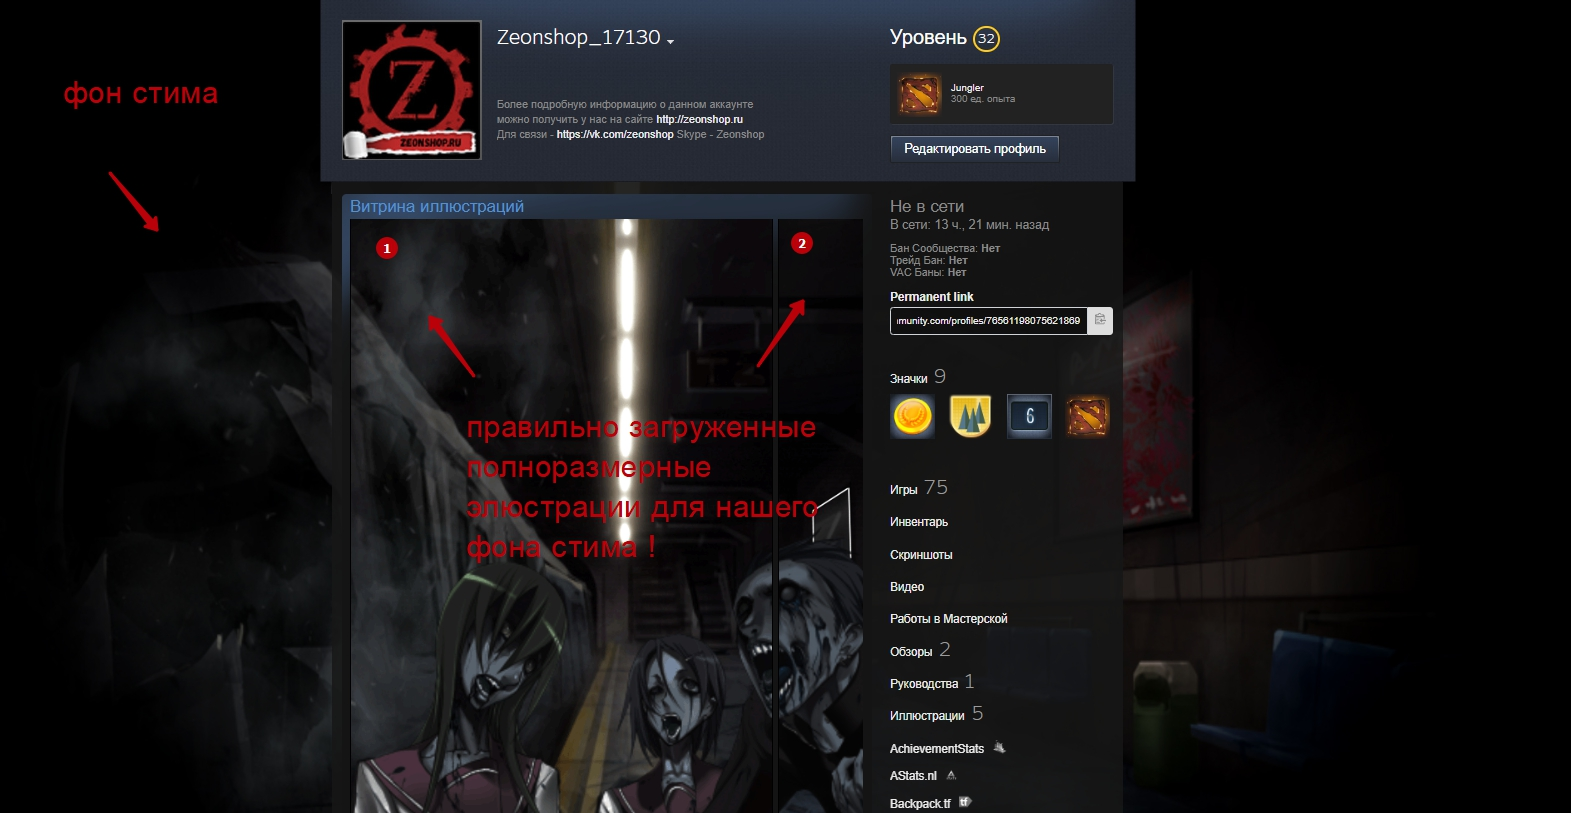 Сообщество Steam  _Z  Инвентарь - Google Chrome.jpg